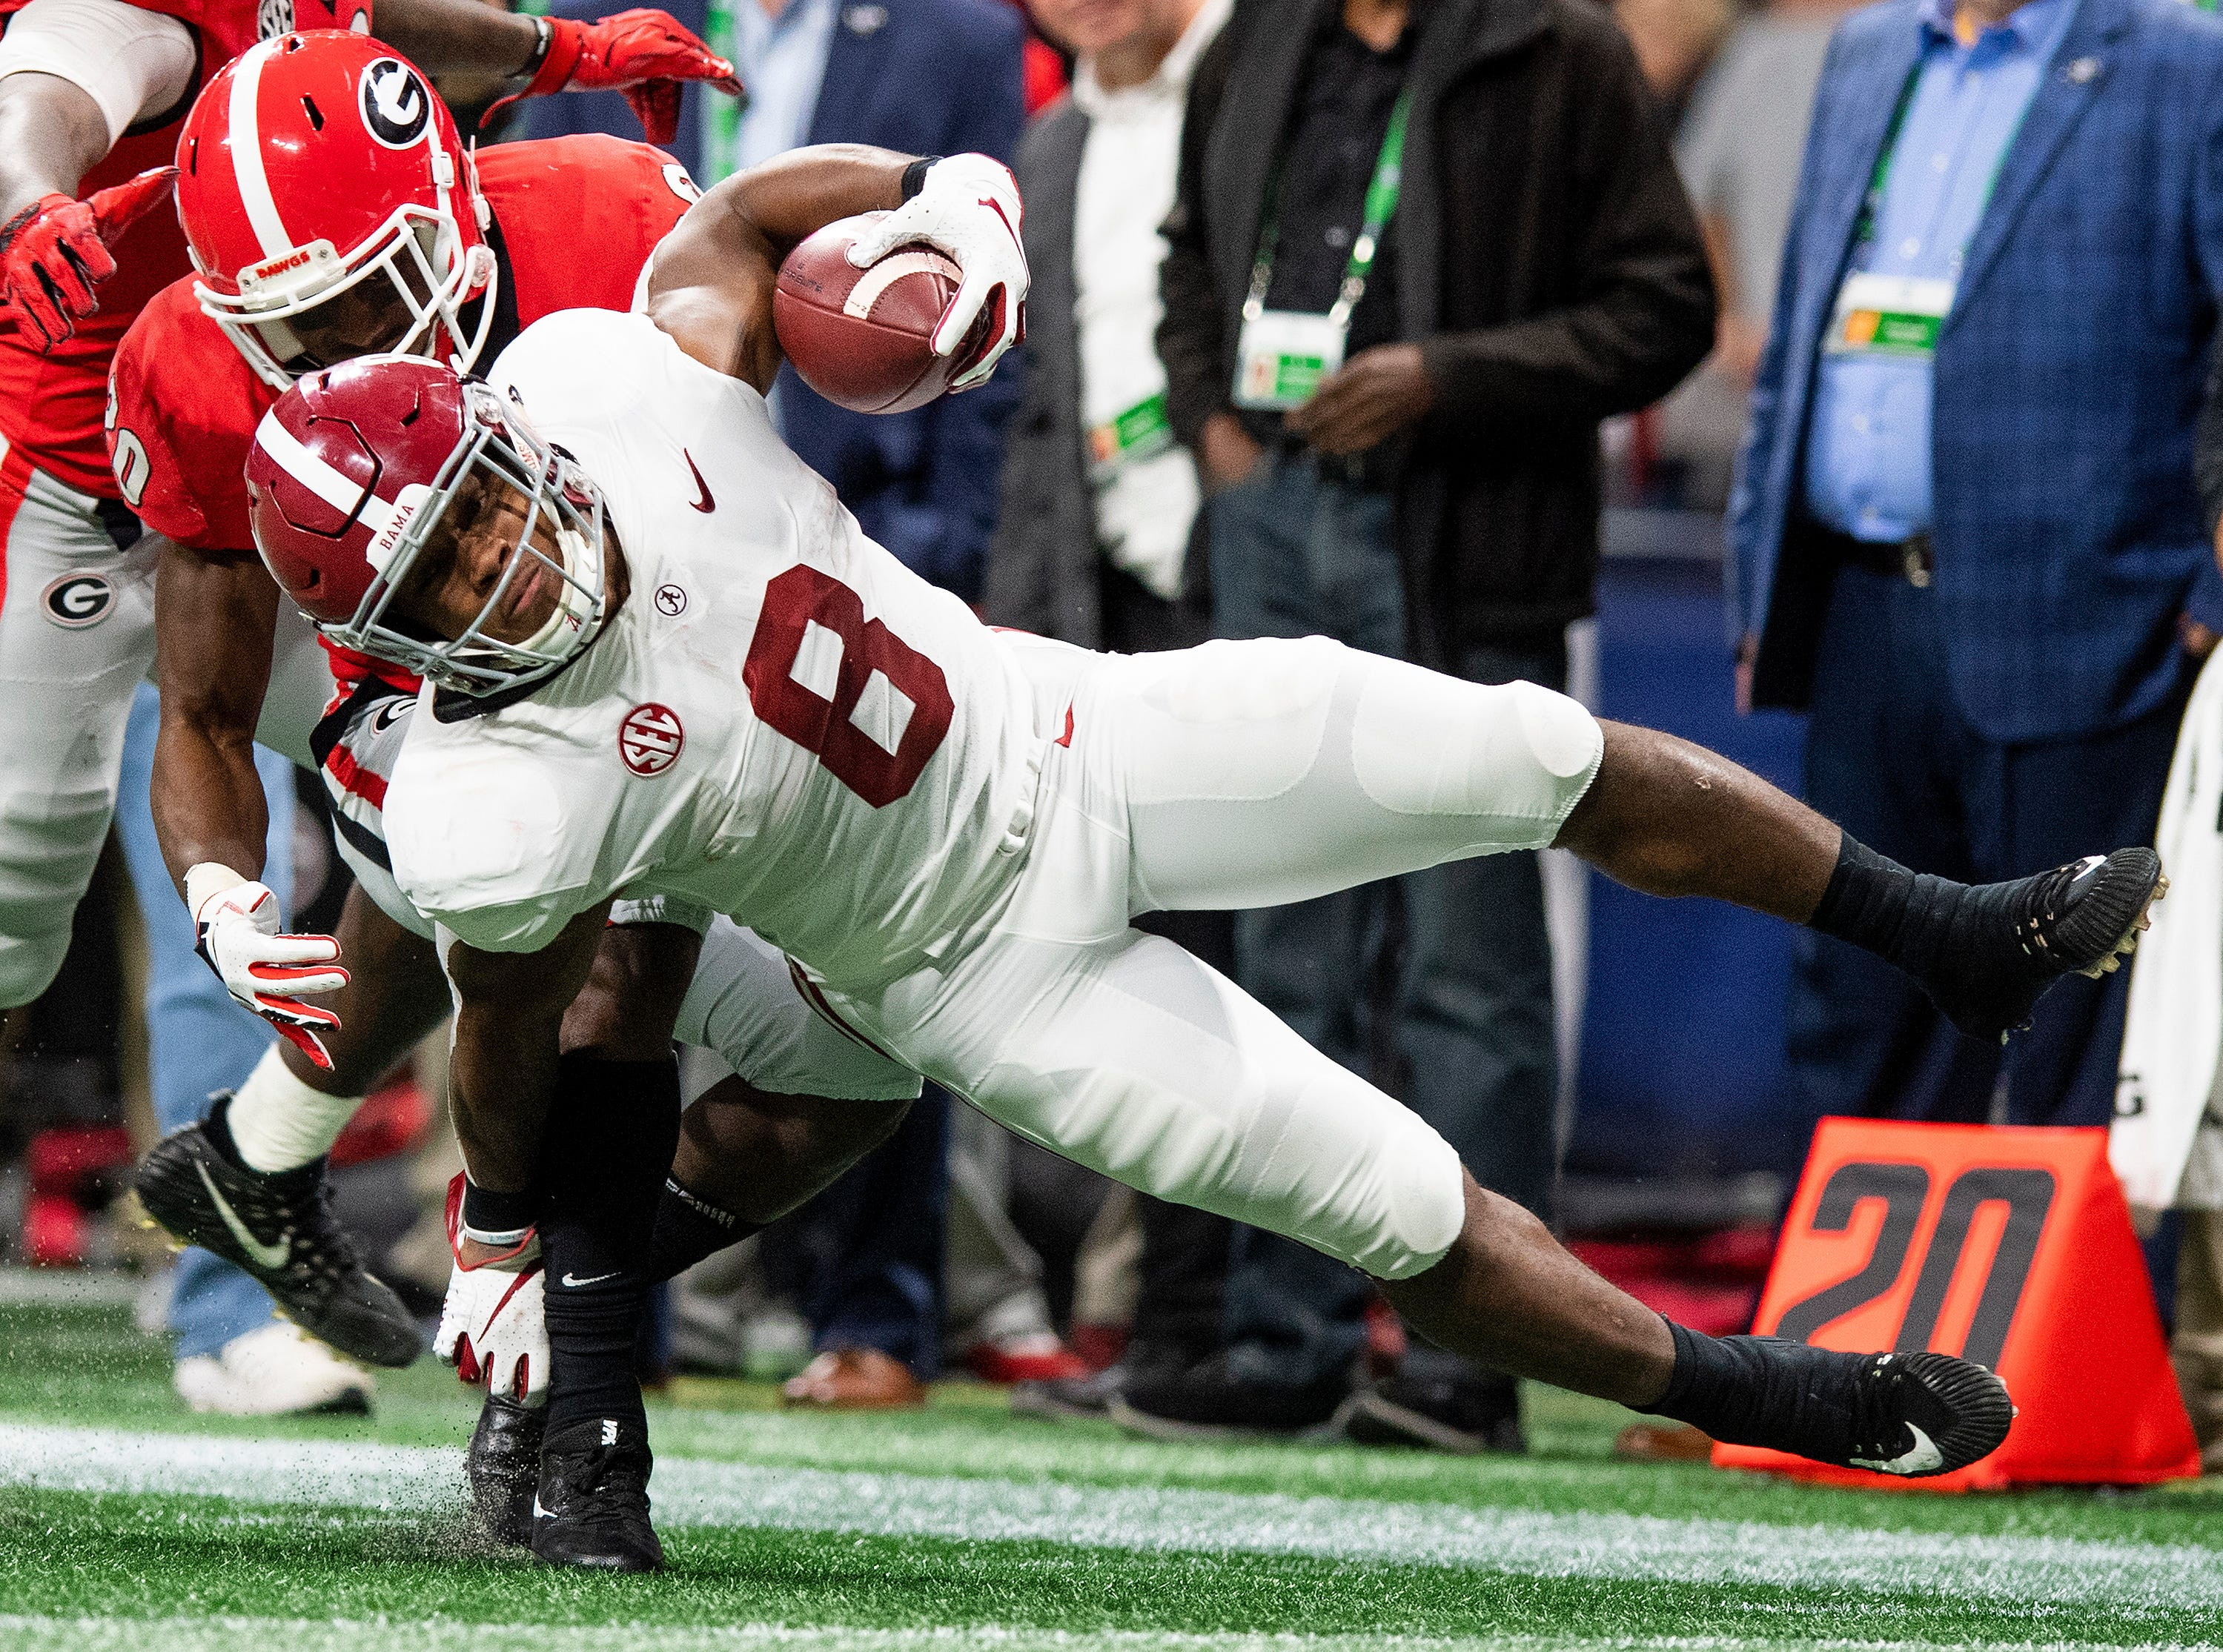 Georgia defensive back J.R. Reed (20) tackles Alabama running back Josh Jacobs (8) after a long gain during first half action of the SEC Championship Game at Mercedes Benz Stadium in Atlanta, Ga., on Saturday December 1, 2018.